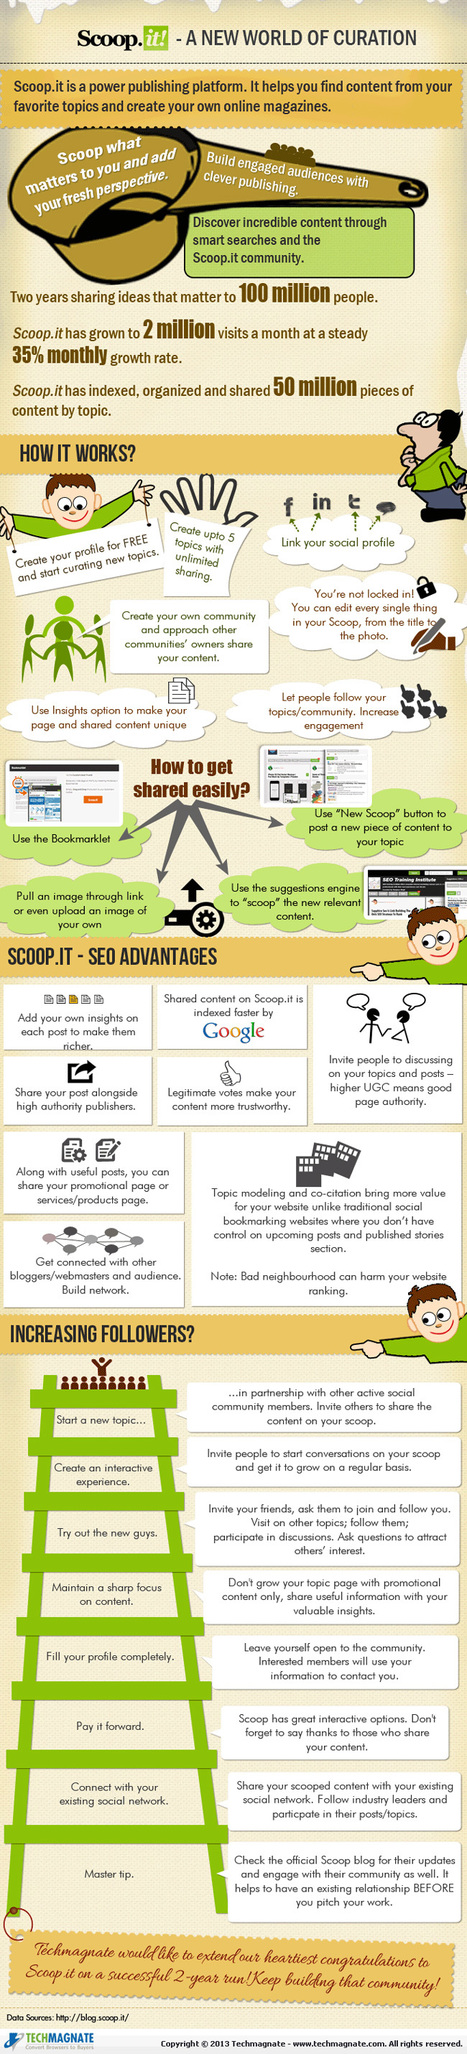 Scoop.It for SEO – A New World of Curation [Infographic] | General | Scoop.it